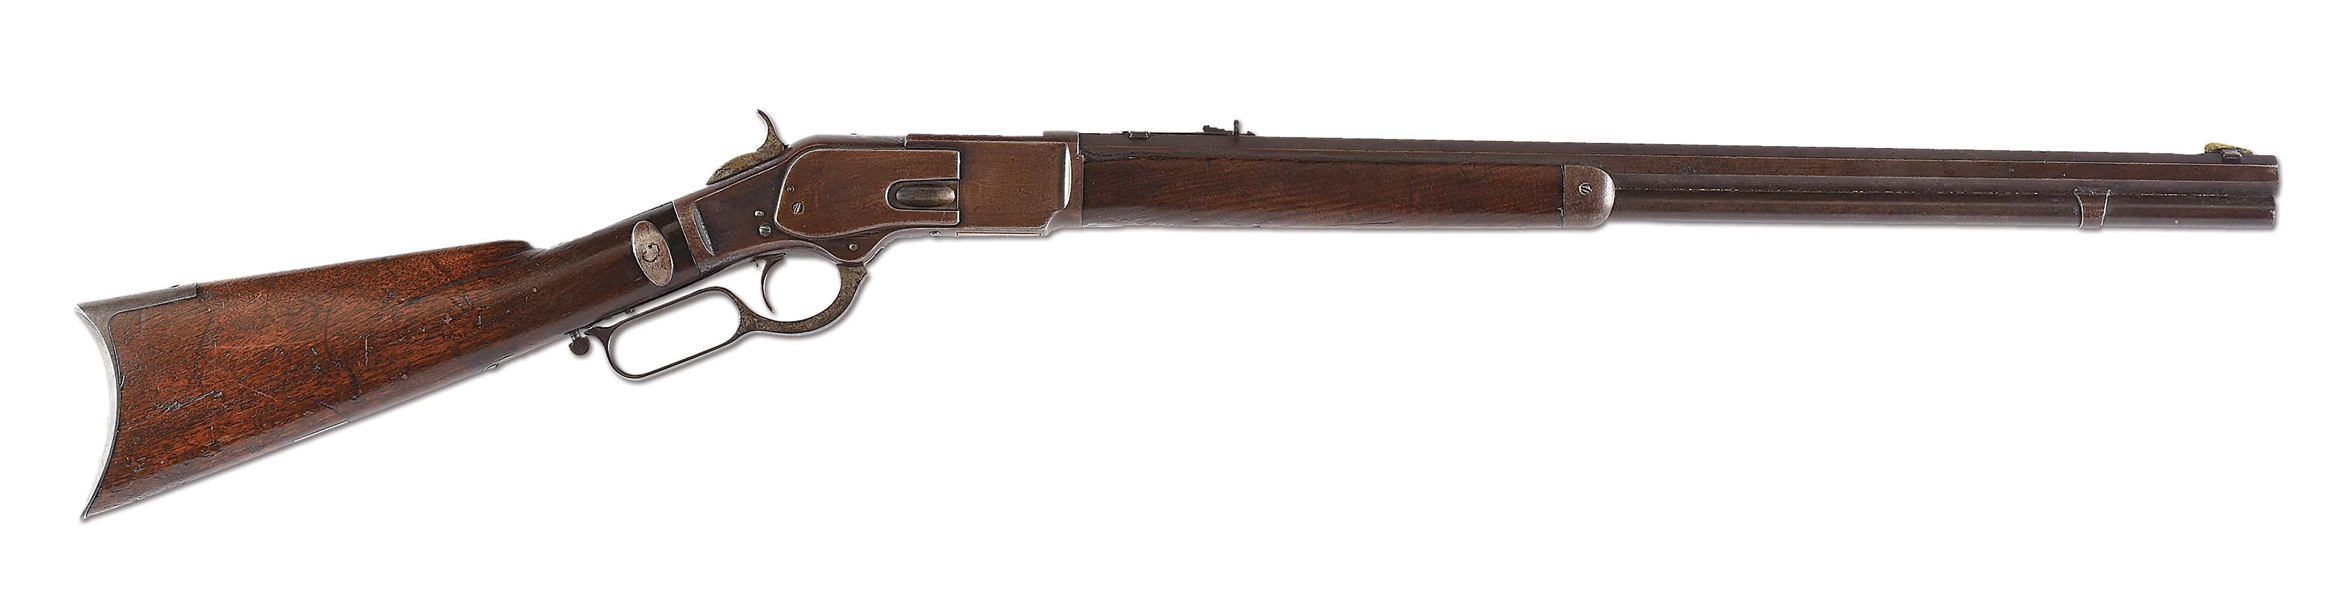 (A) WINCHESTER MODEL 1873 LEVER ACTION RIFLE ATTRIBUTED TO CHIEF RAIN-IN-THE-FACE.